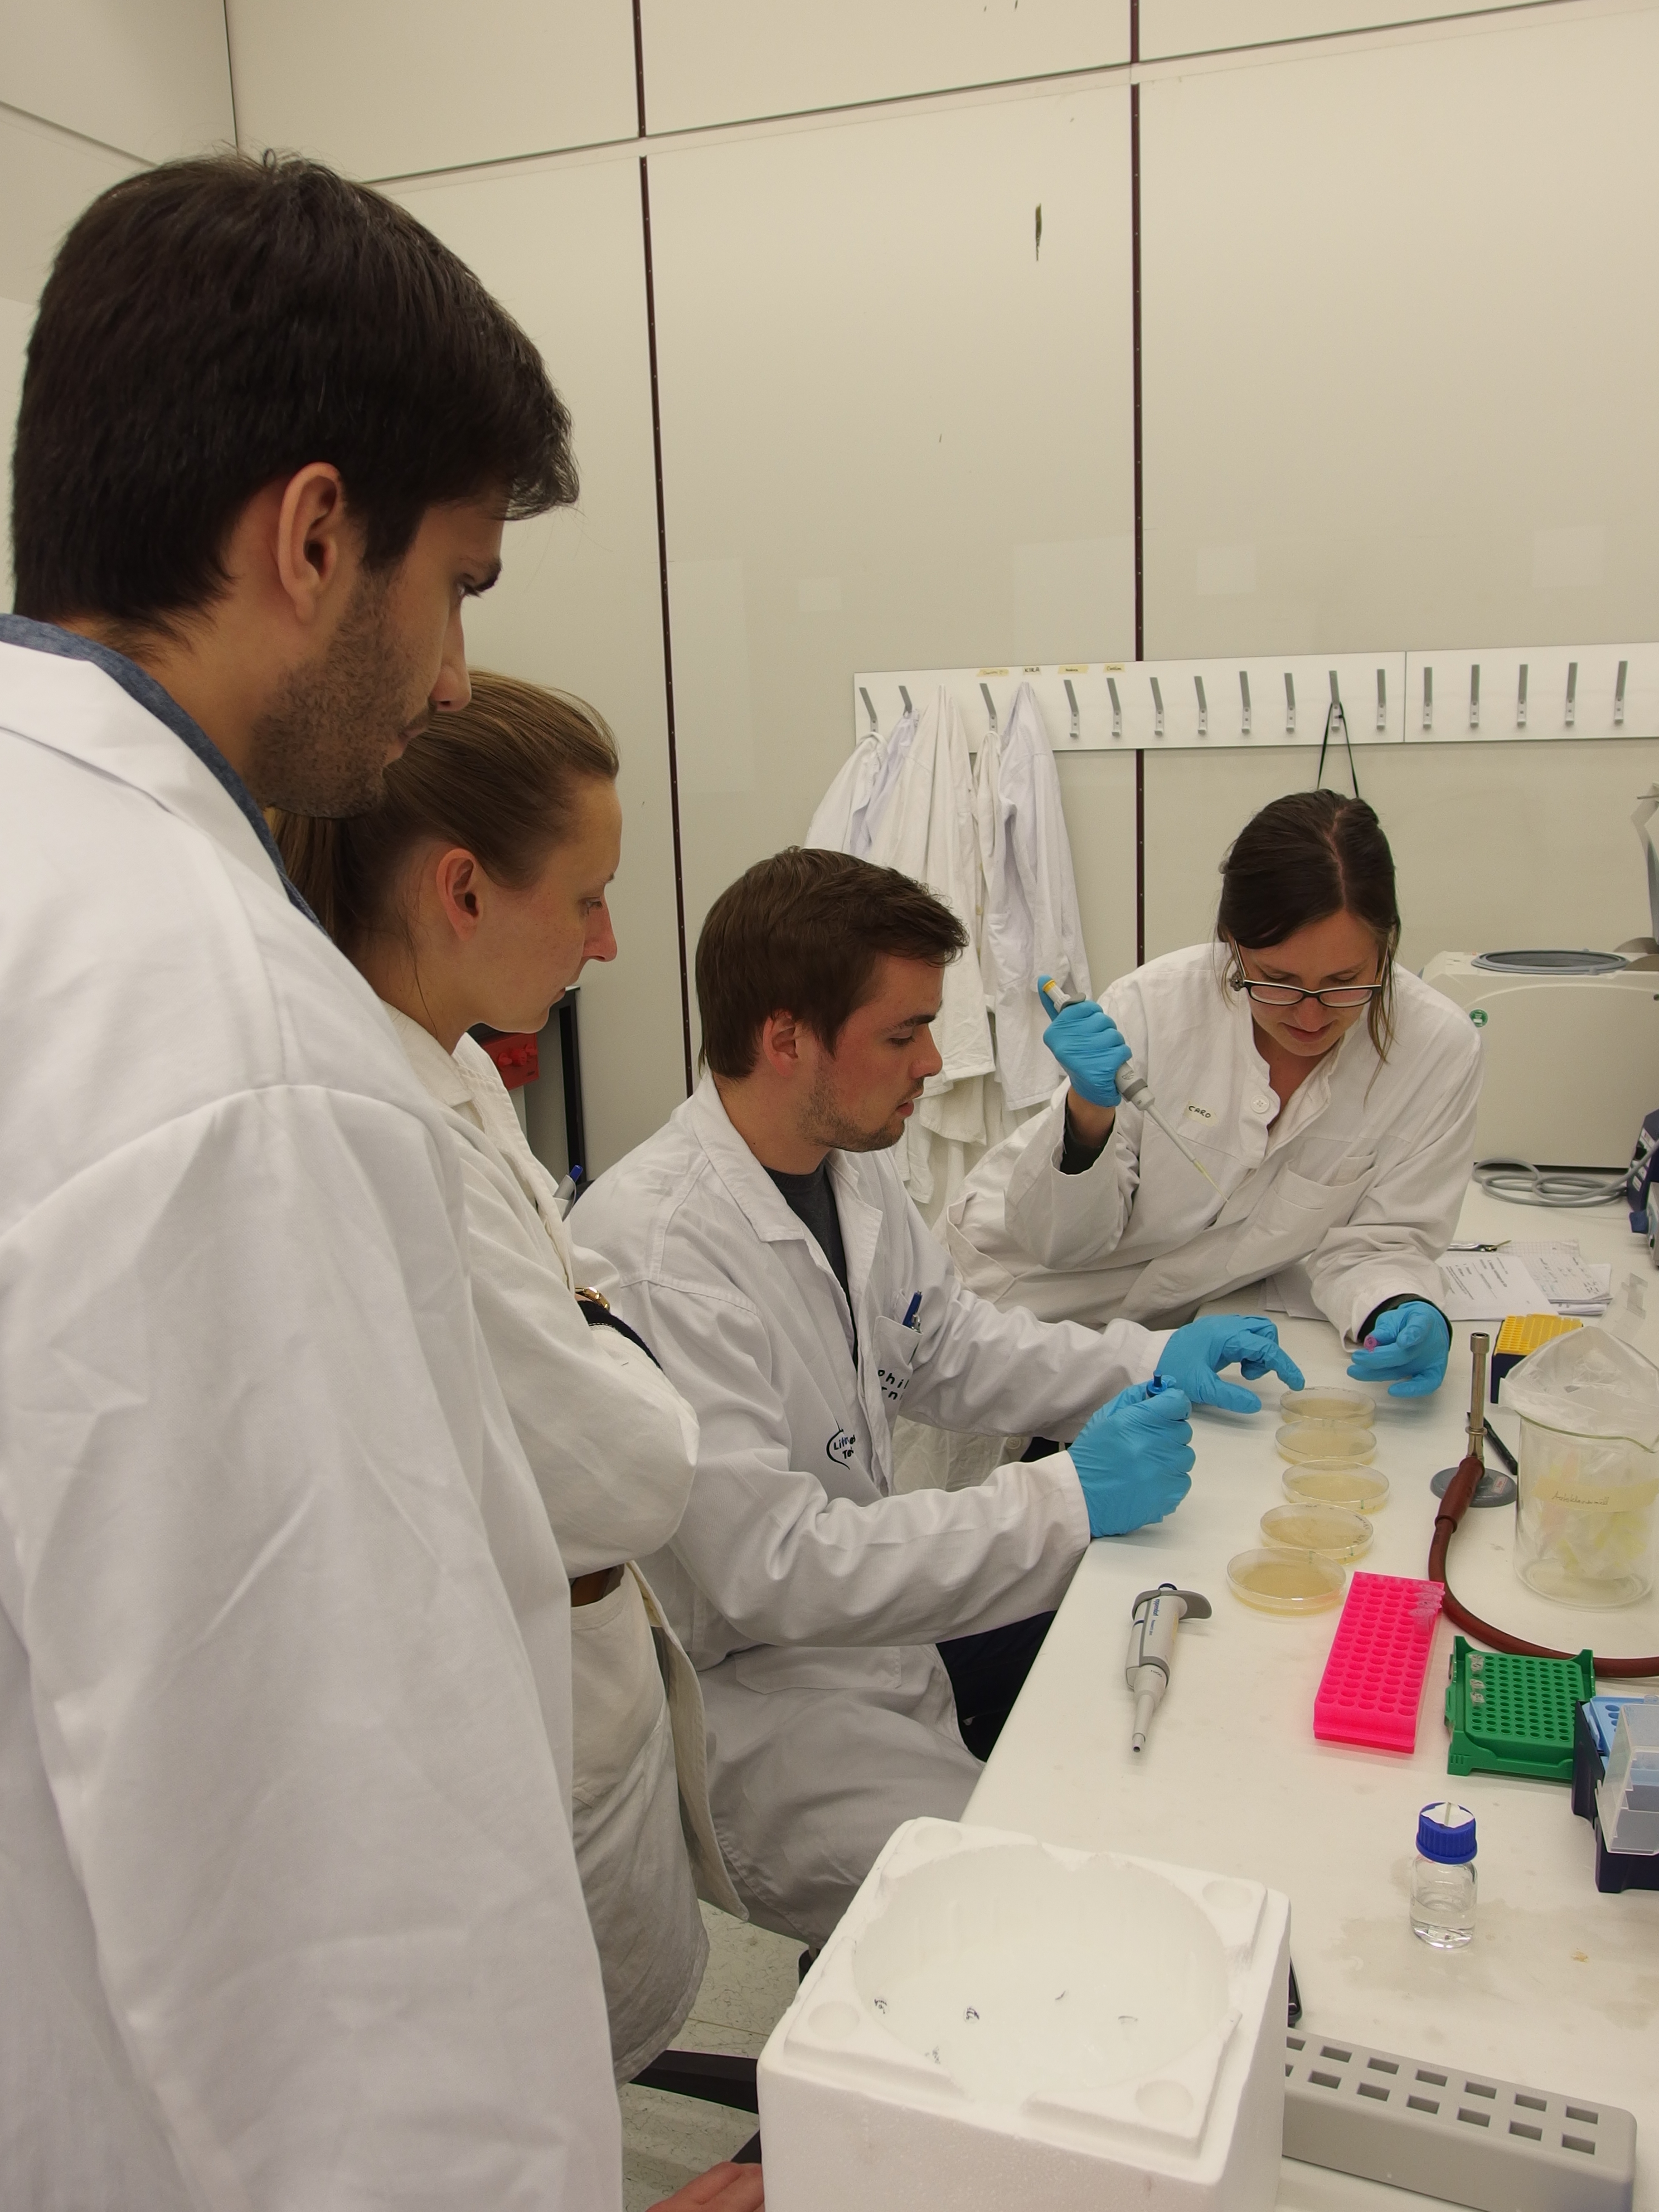 Group of students working in a laboratory with agar plates